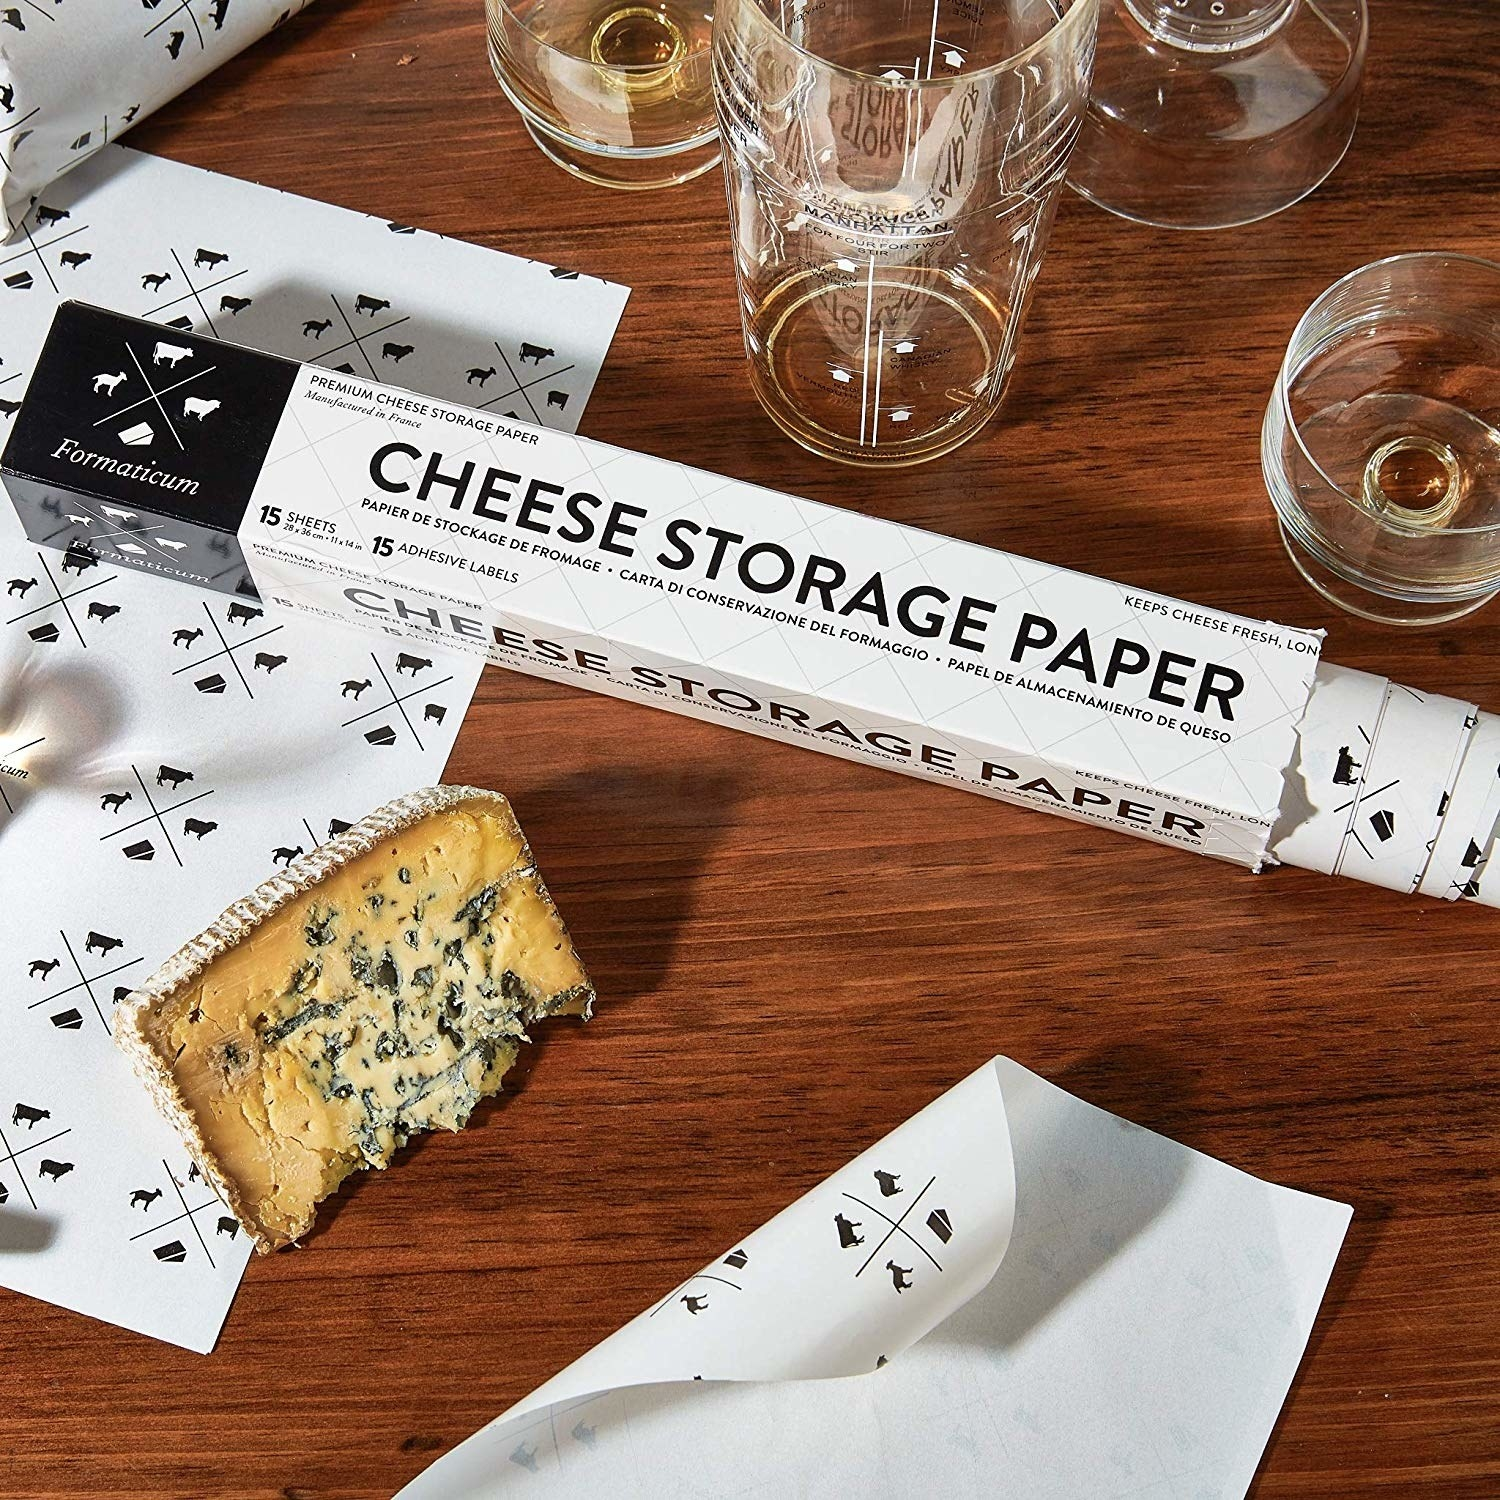 A roll of cheese paper